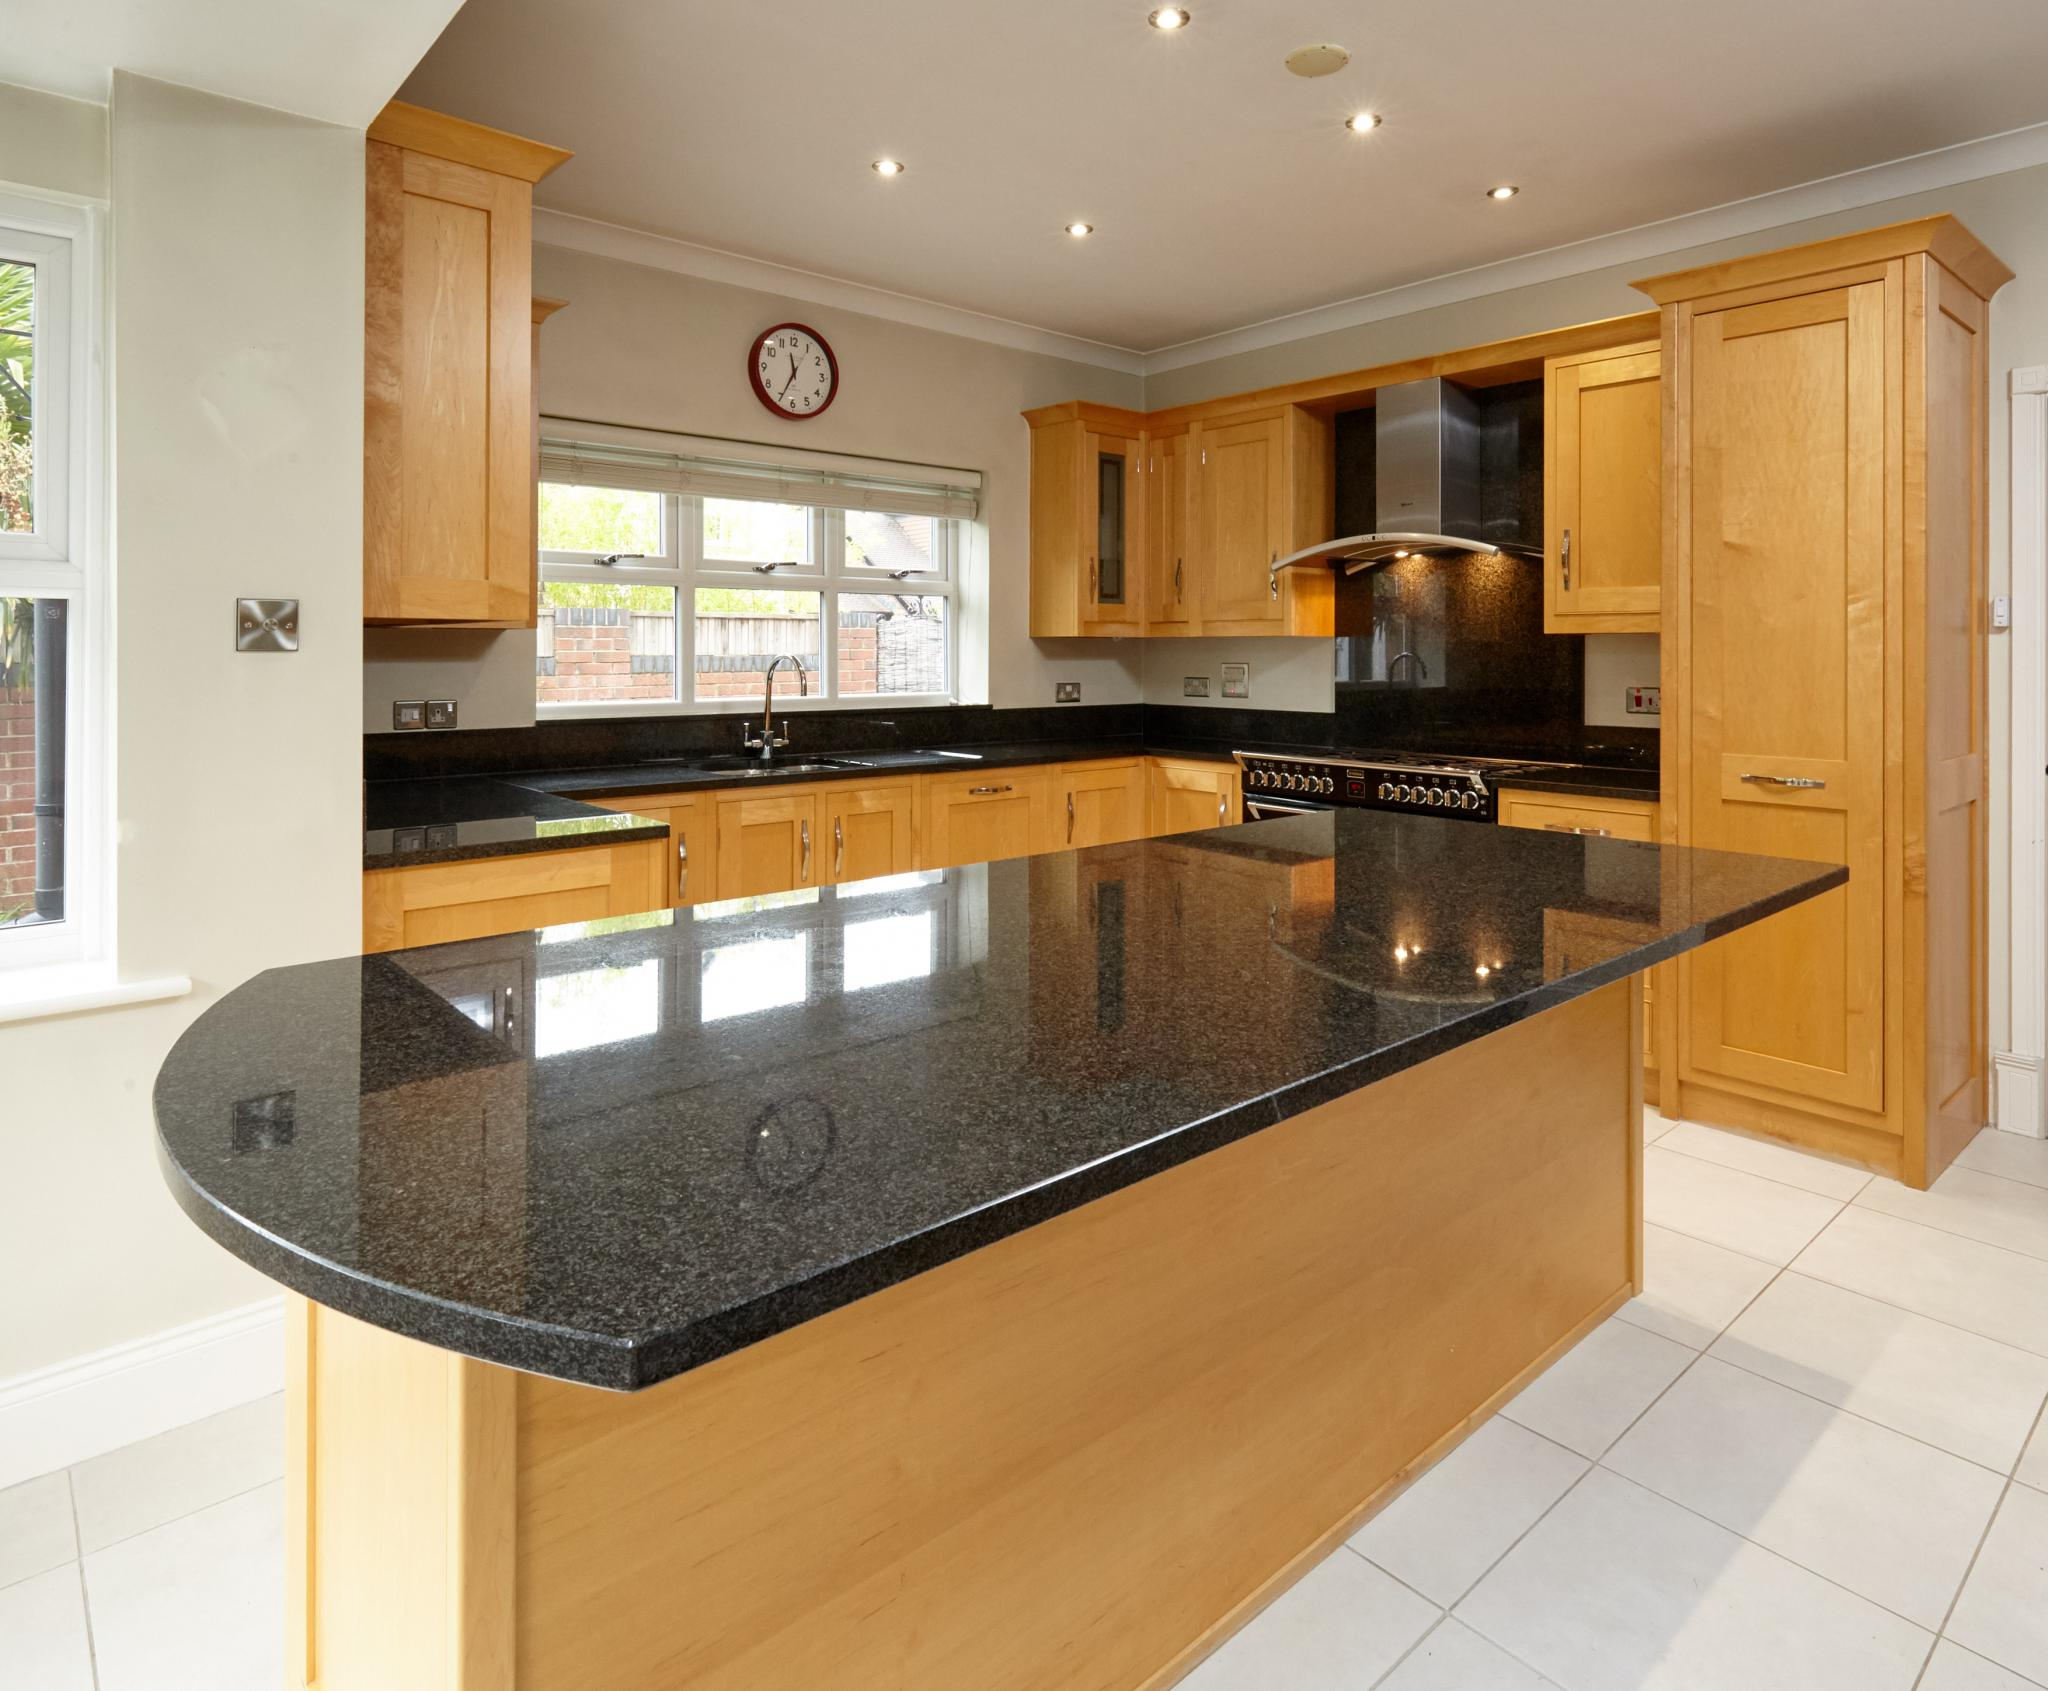 Traditional Shaker In-Frame Family Used Kitchen with Island - Full View